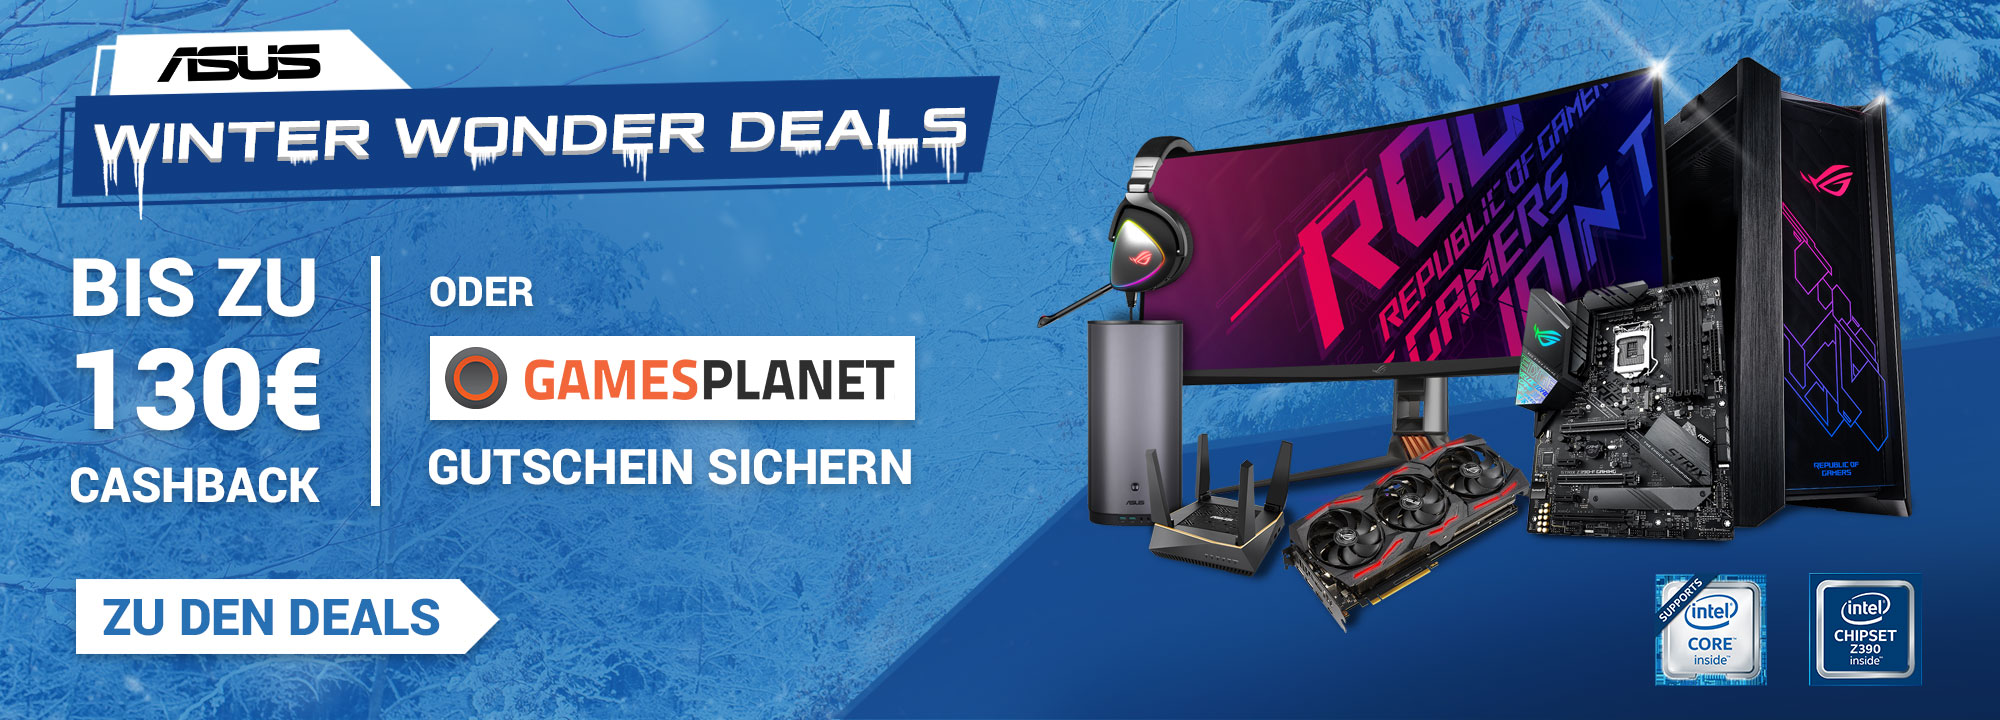 ASUS Winter Wonder Deals 2019/2020